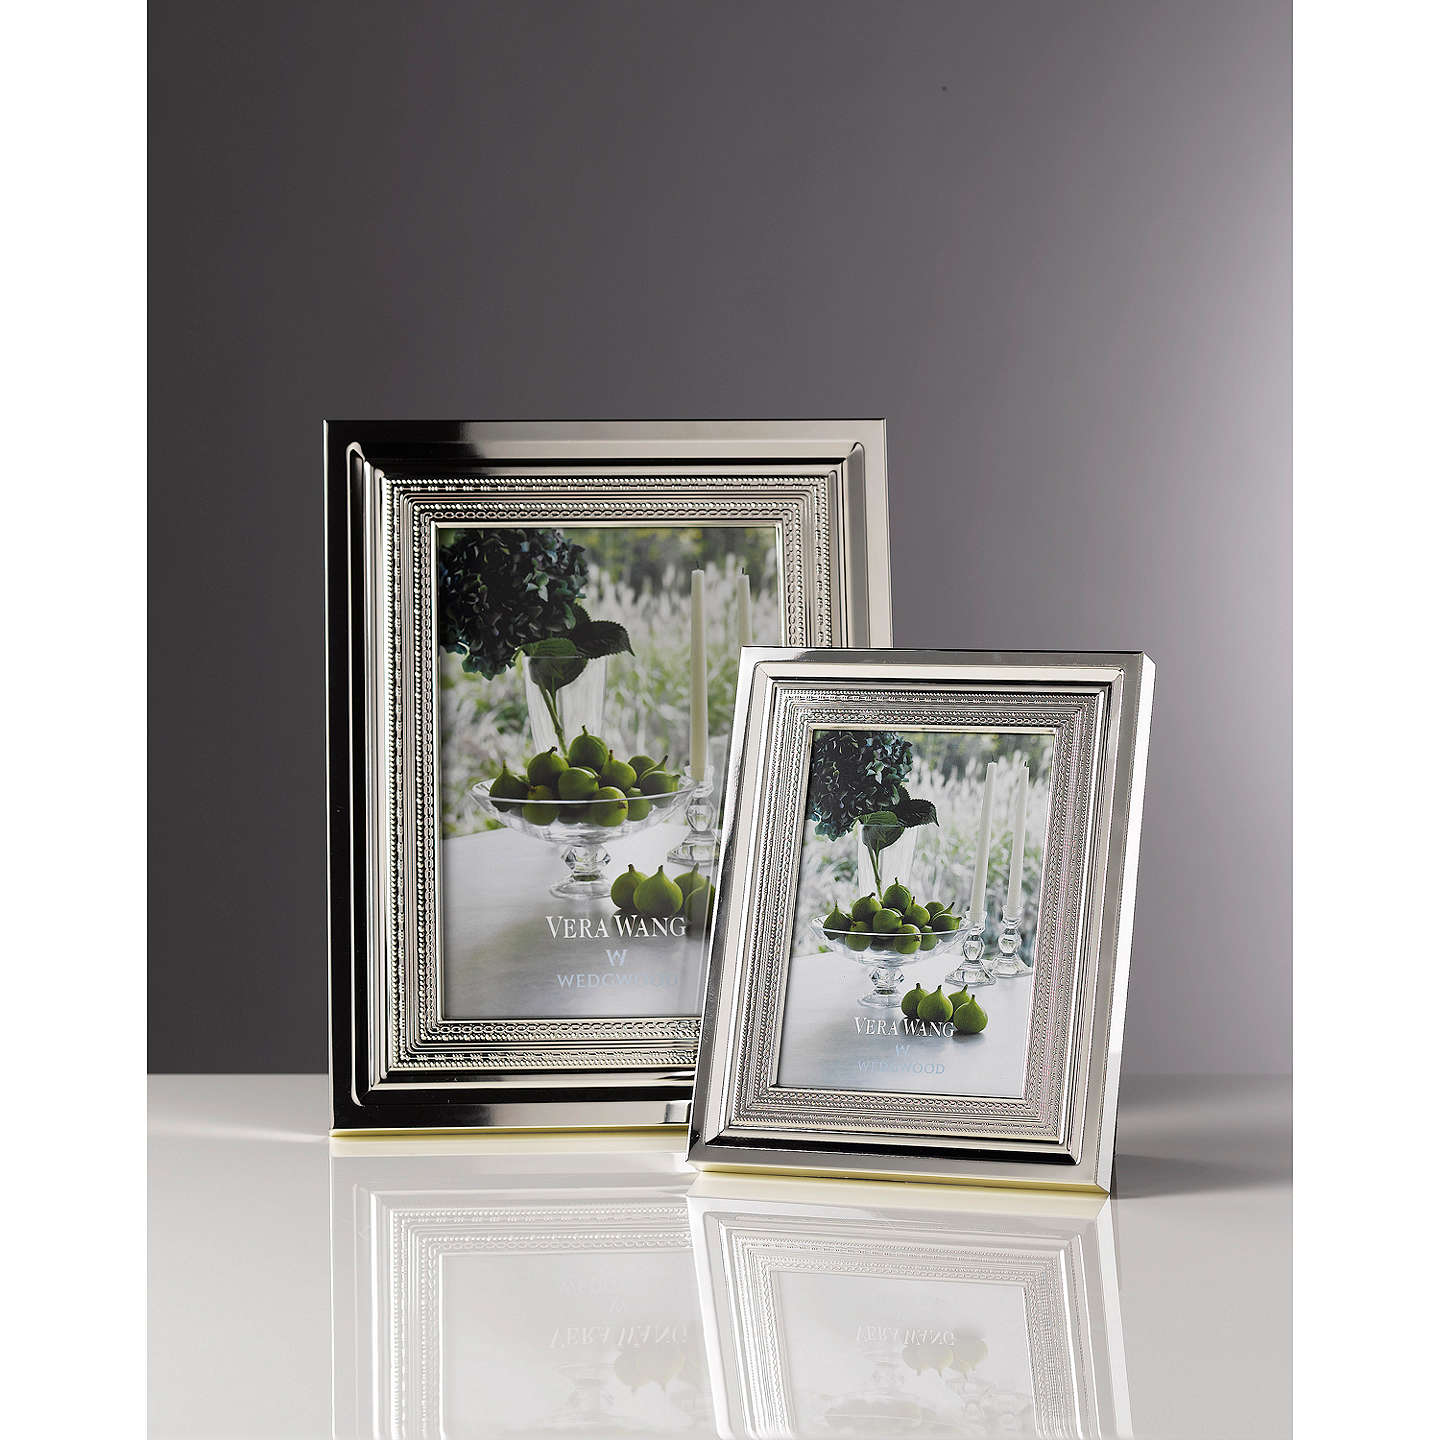 Vera Wang for Wedgwood With Love Photo Frame, Silver at John Lewis